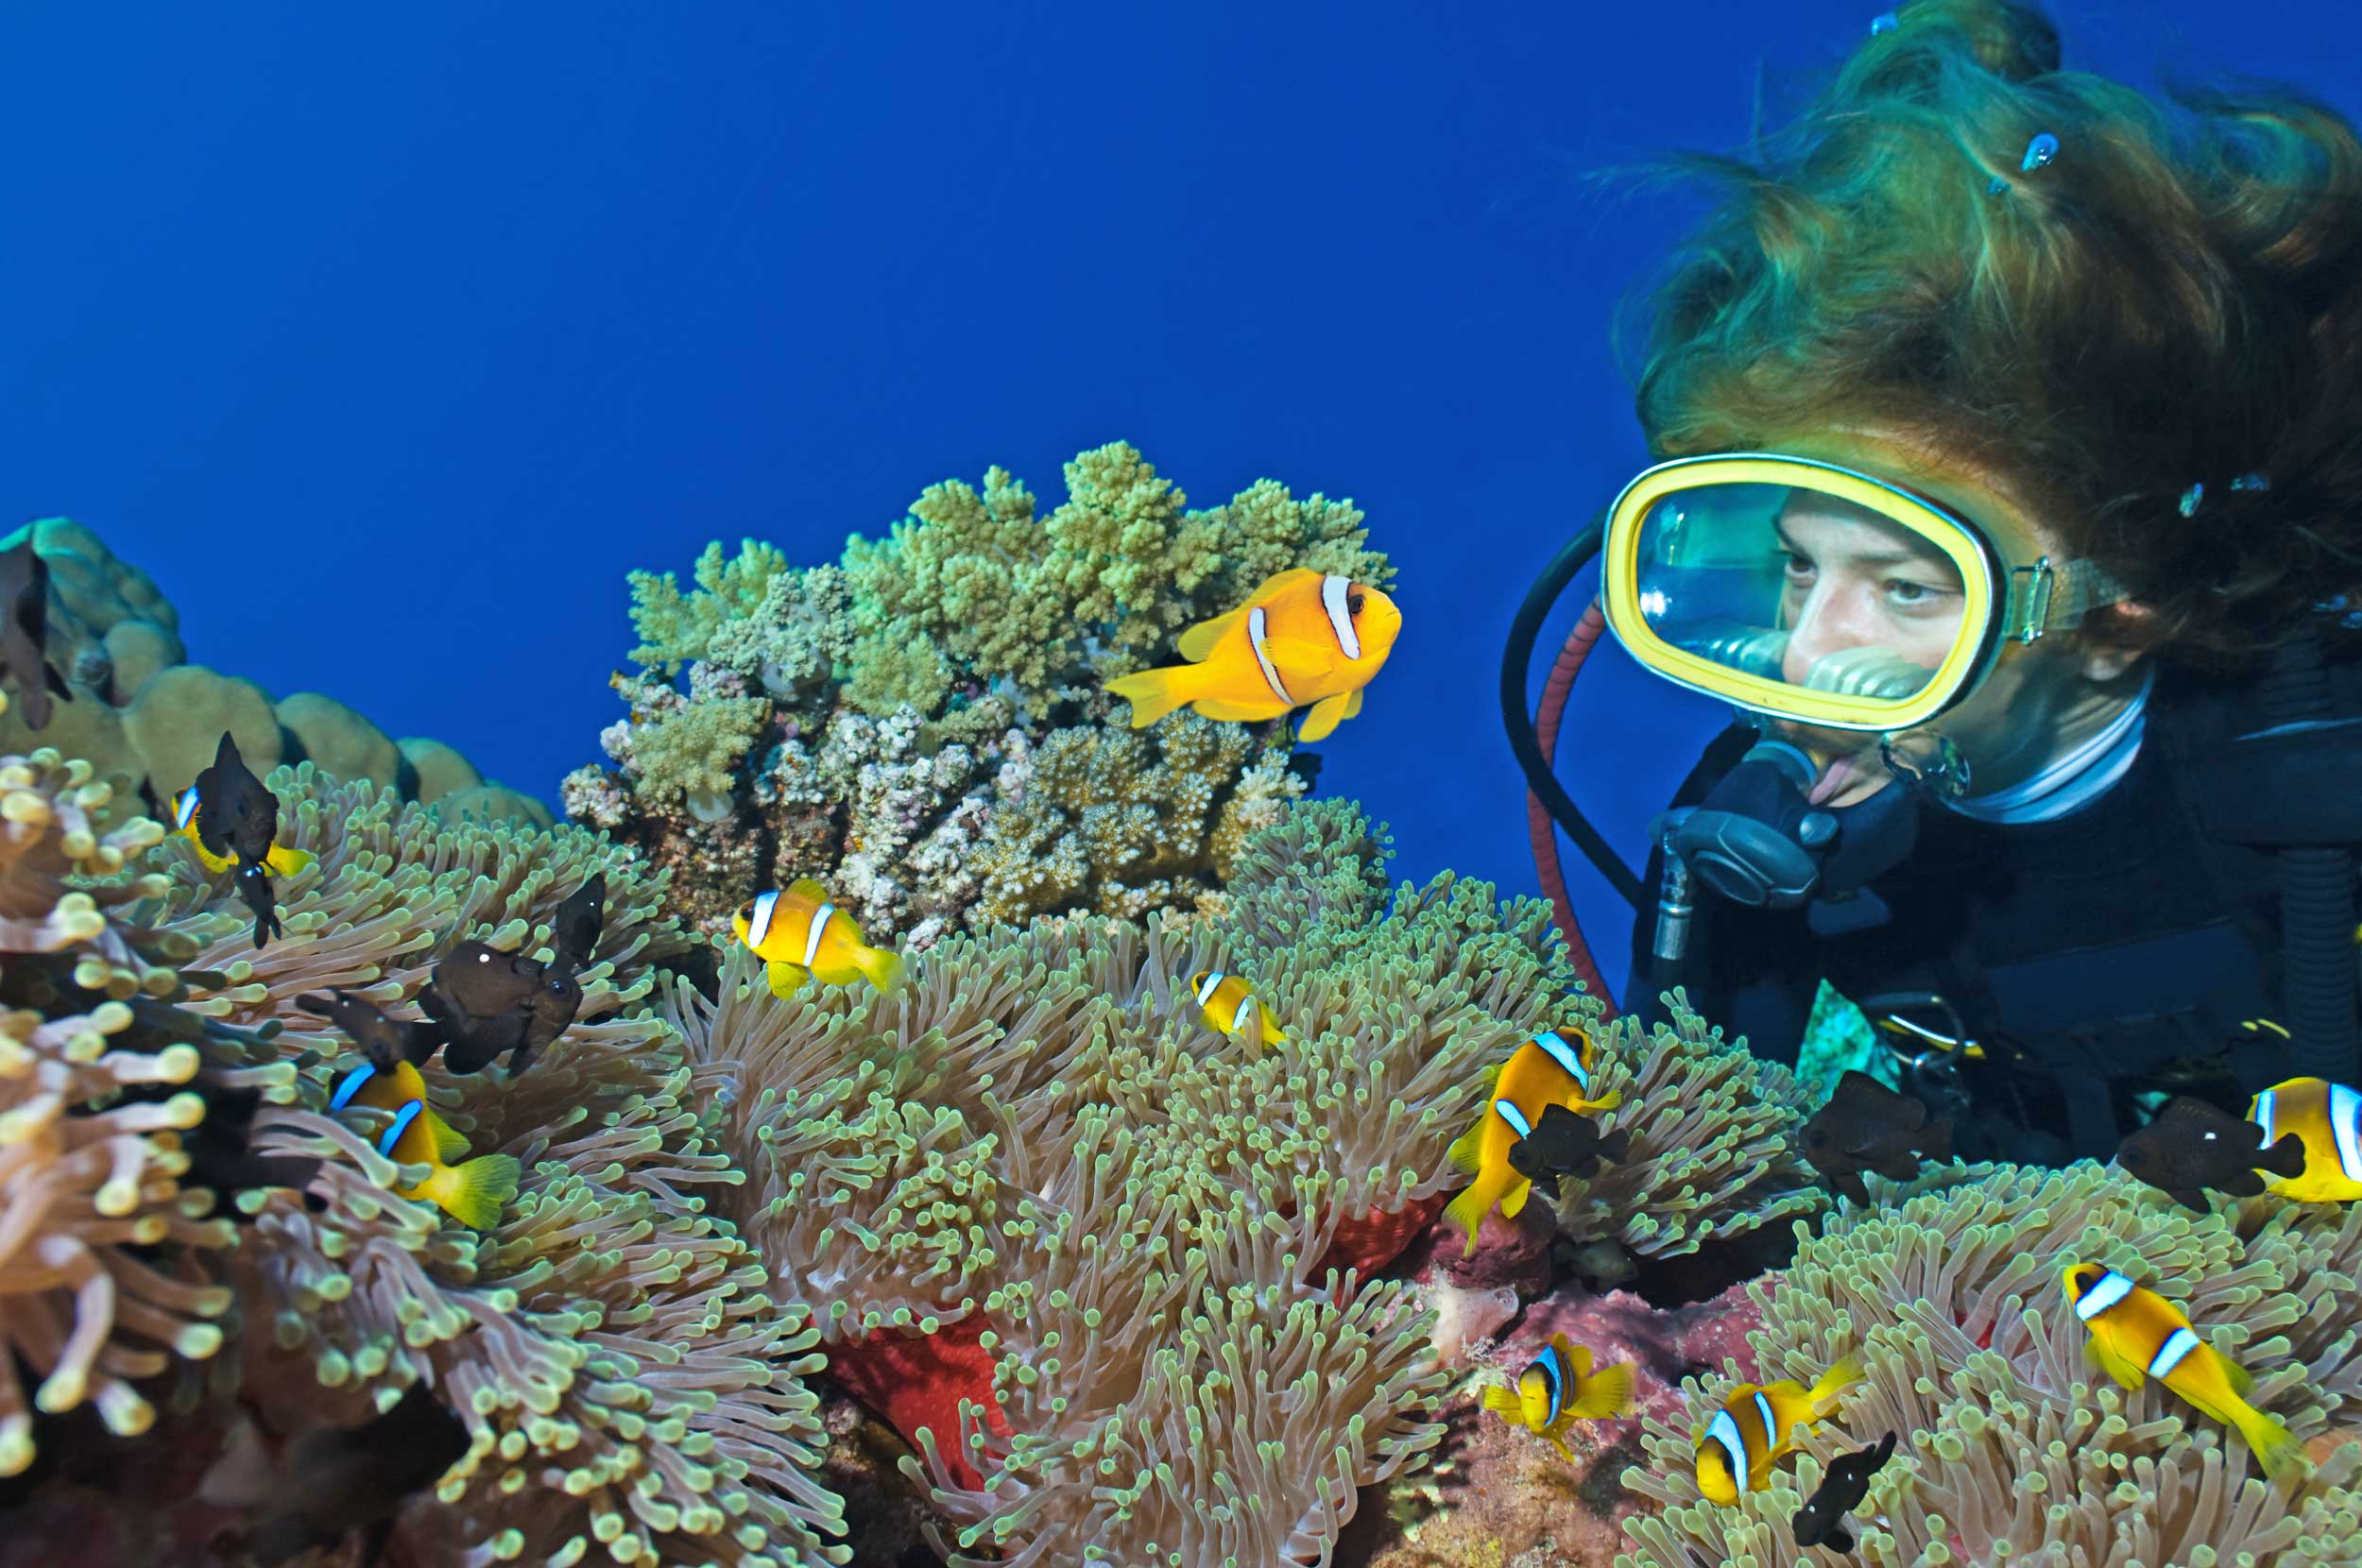 Scuba Diver underwater next to Clown Fish and coral